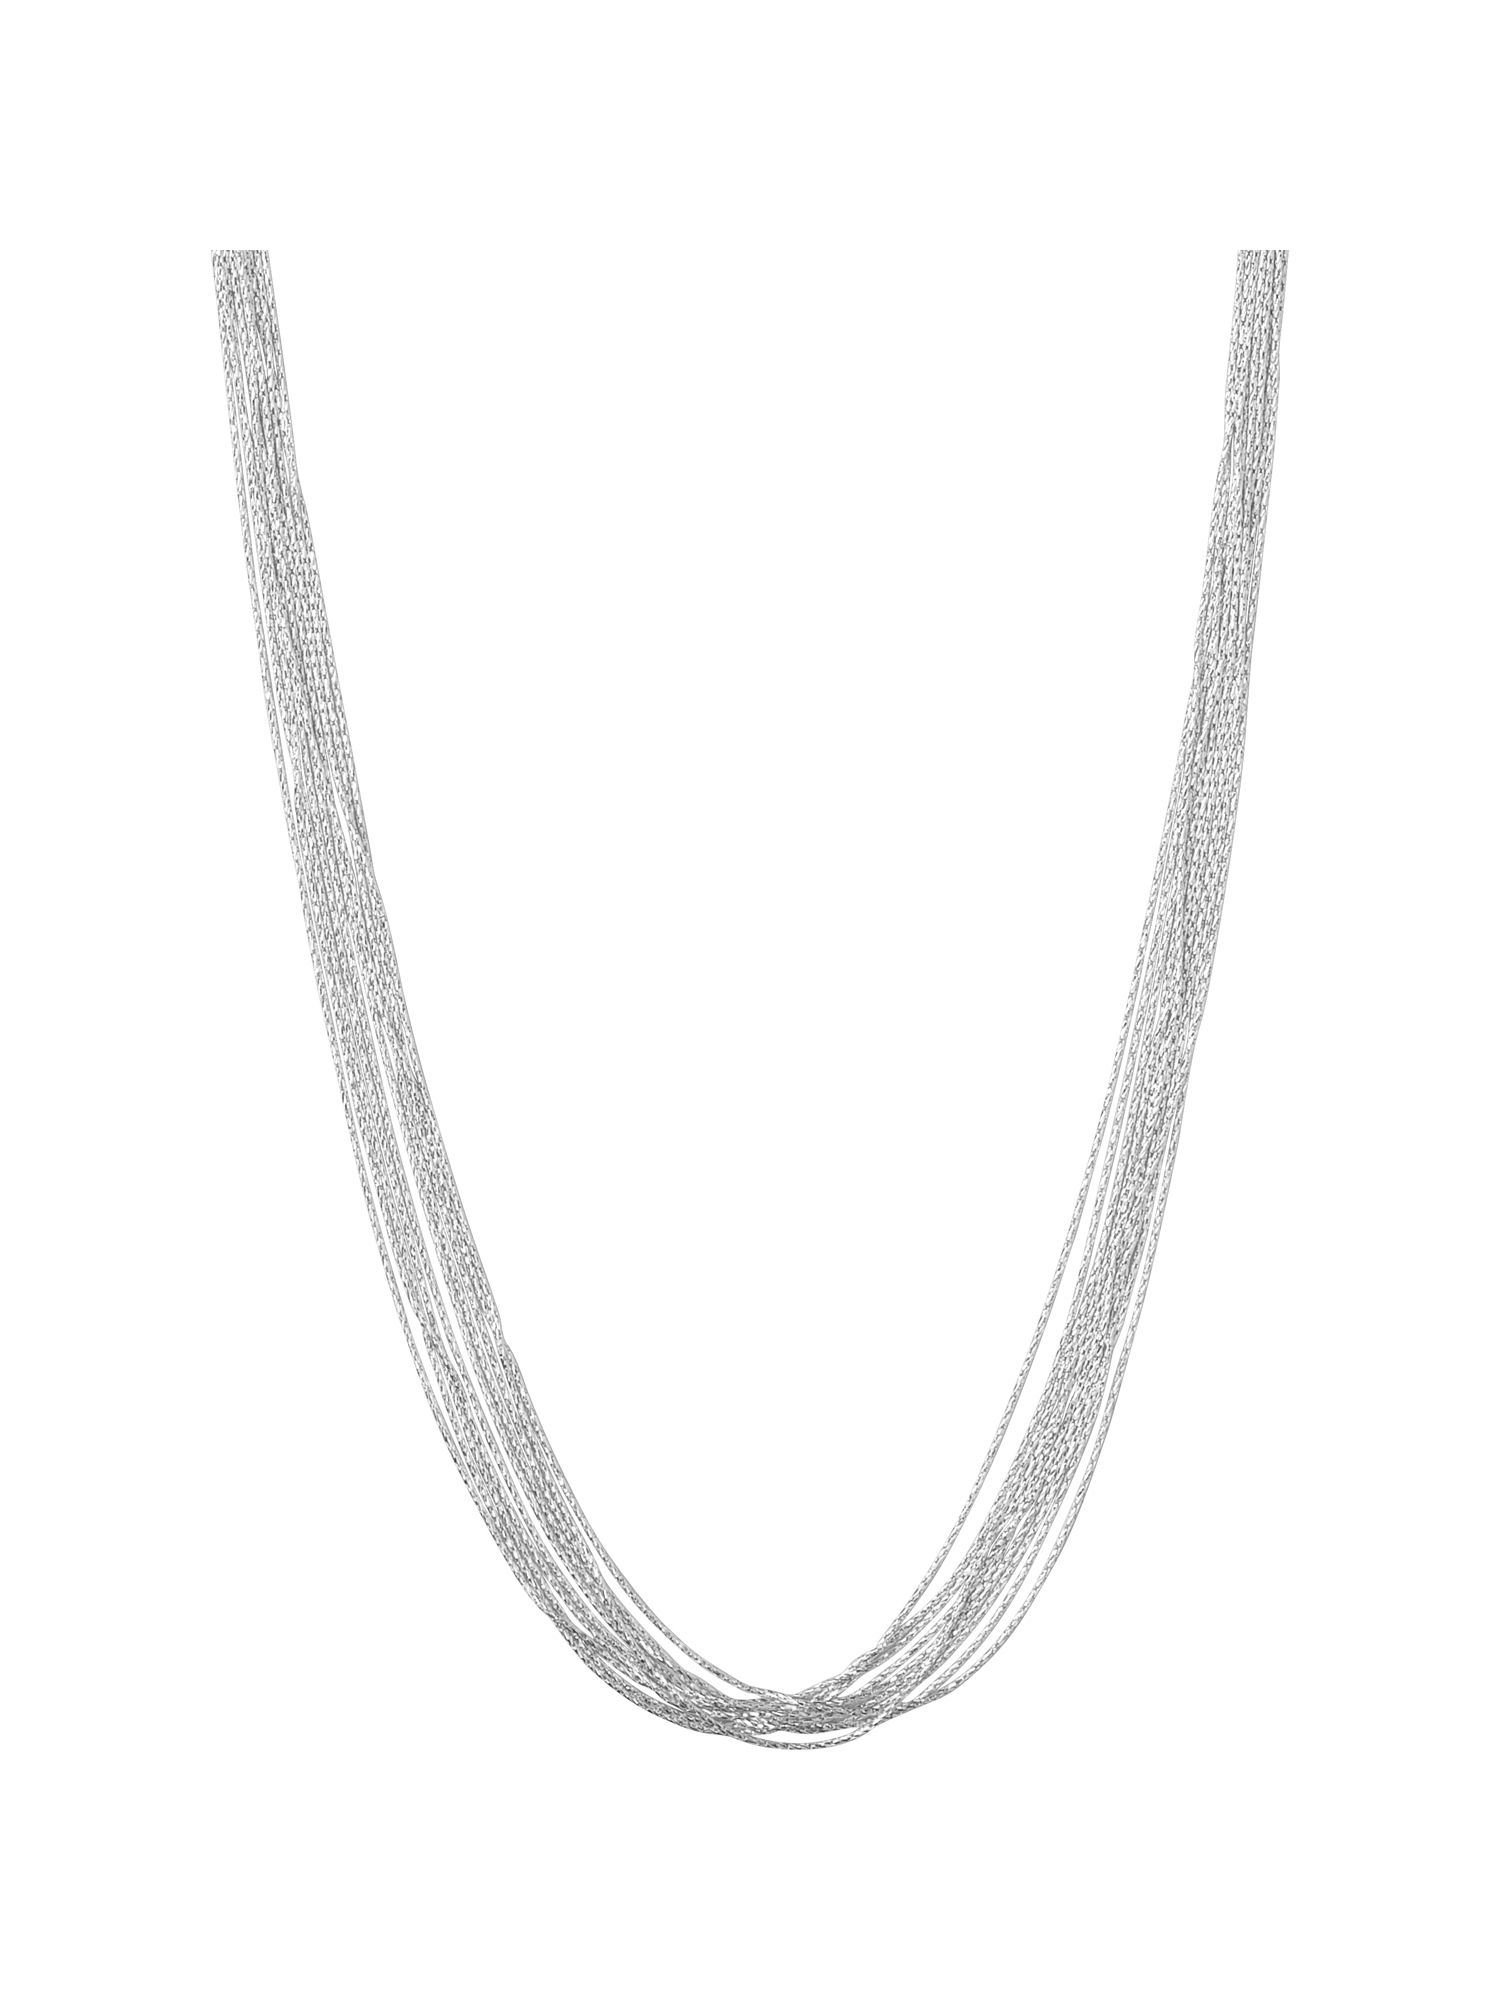 Silk 10 row necklace 45cm